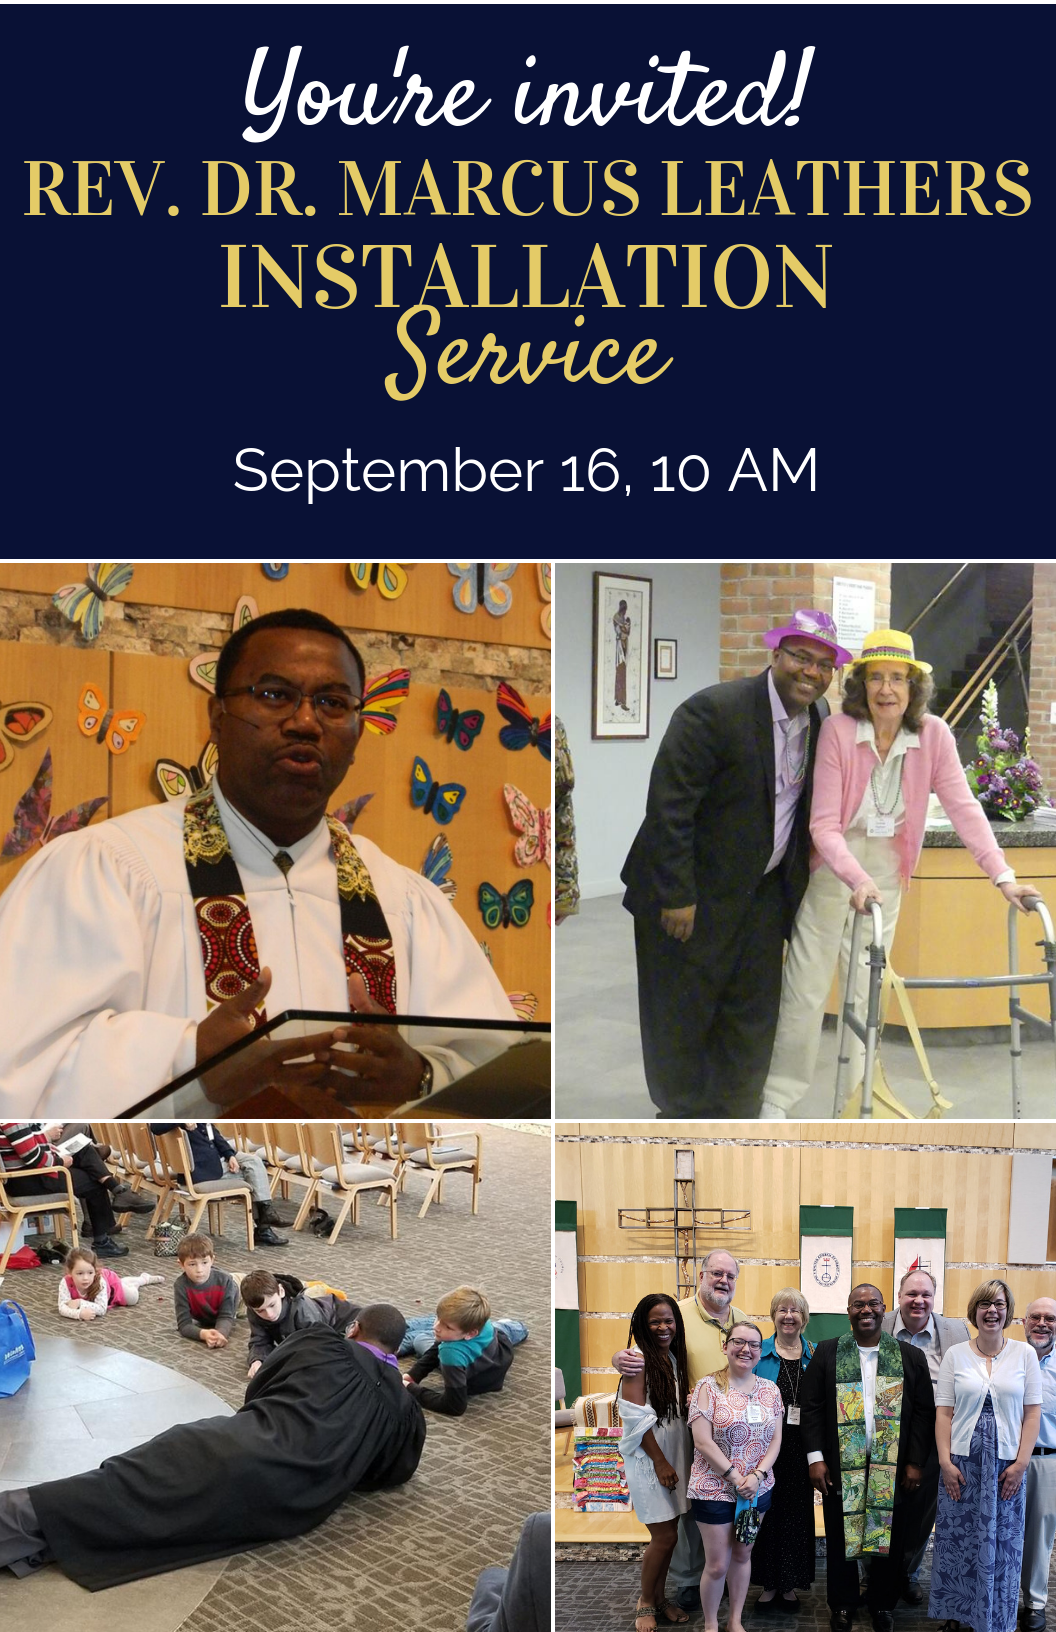 You're invited to the Installation Service for Marcus Leather, Sept. 16, 10am